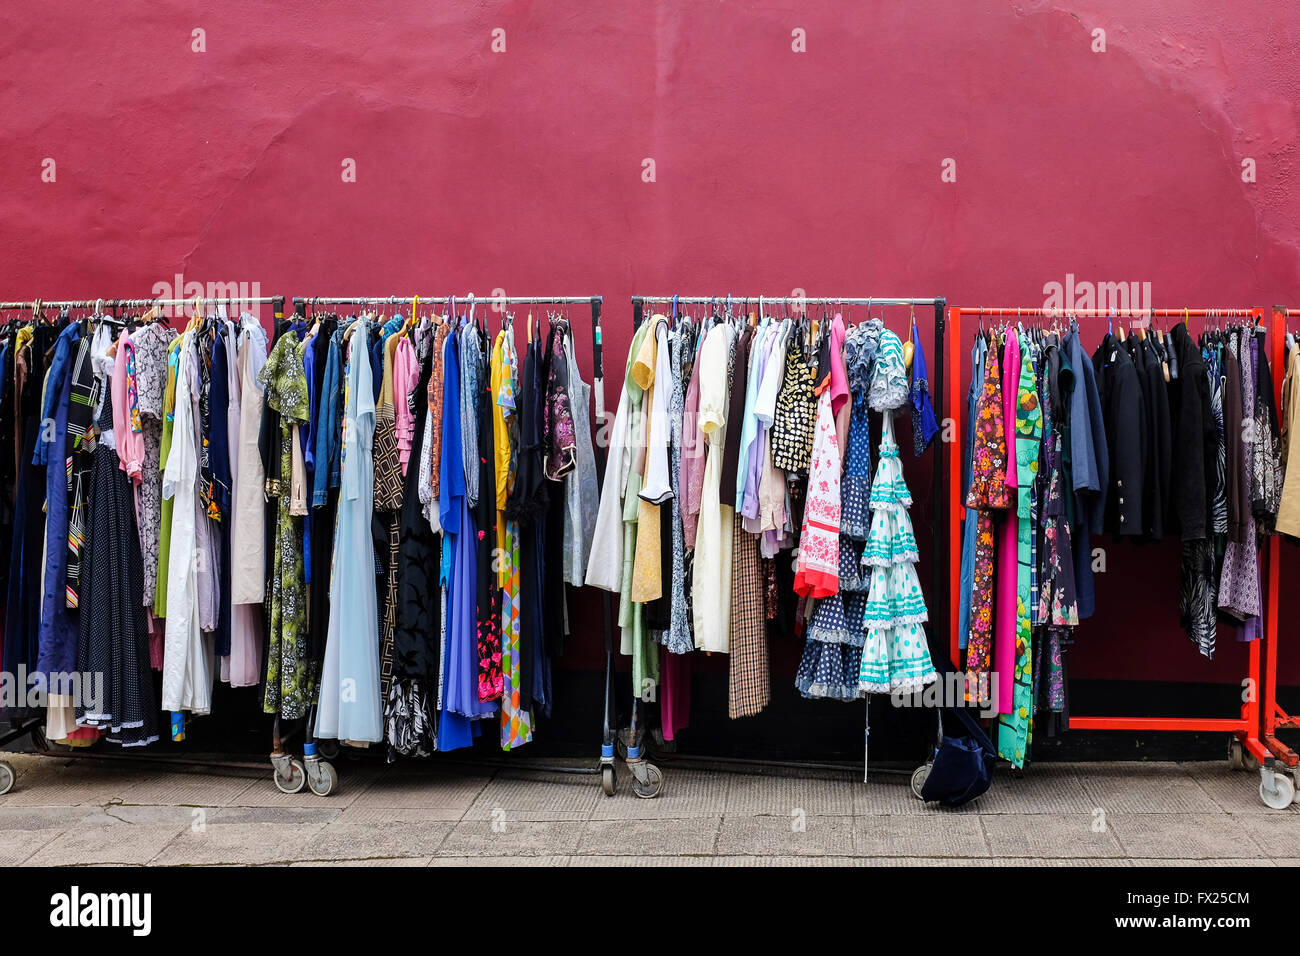 Rails of secondhand clothes for sale at Glasgow flea market, The Barras, Glasgow, Scotland, UK - Stock Image